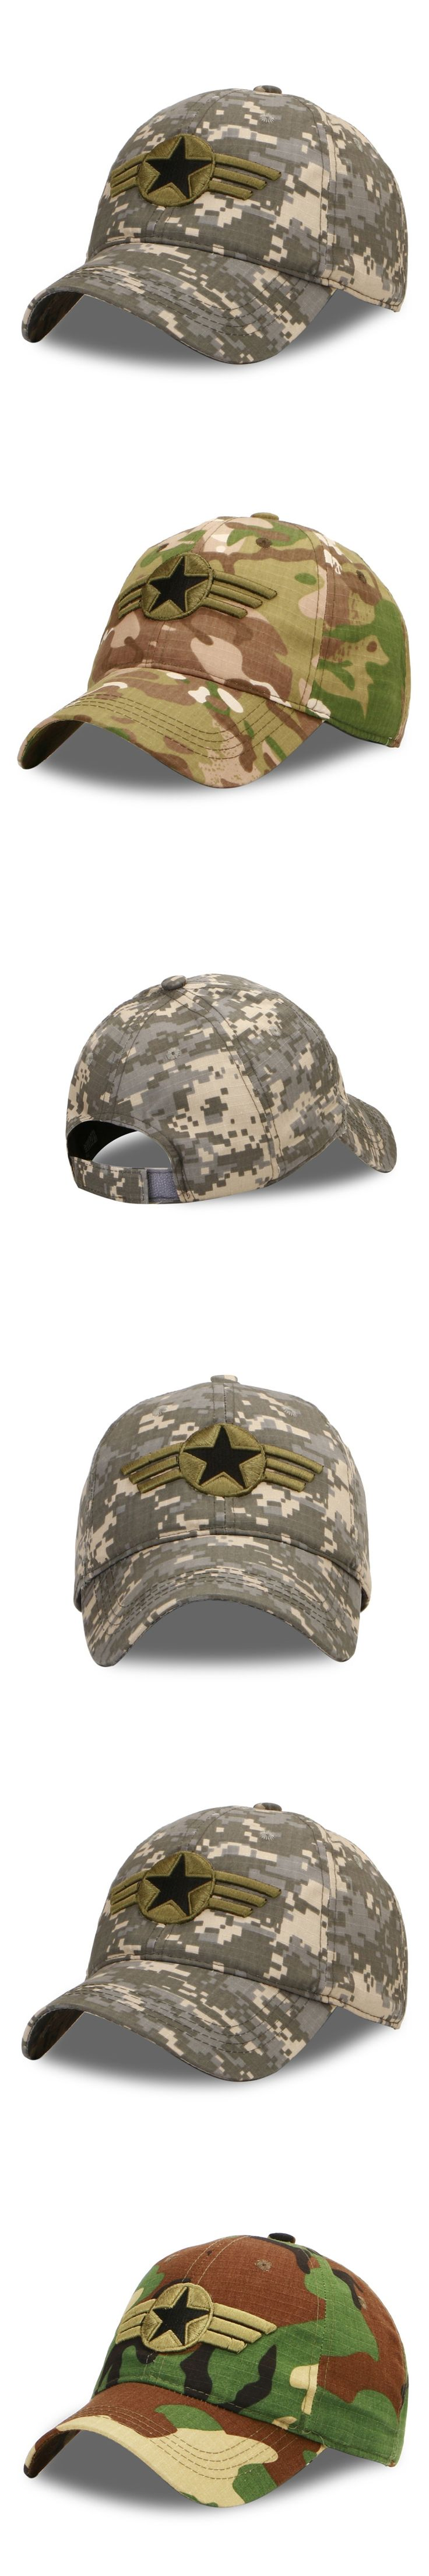 Cool Arm Soldier Fans camouflage with embroided star badge baseball cap snapback Hat for men women Travel Hiking Camping Sun Cap